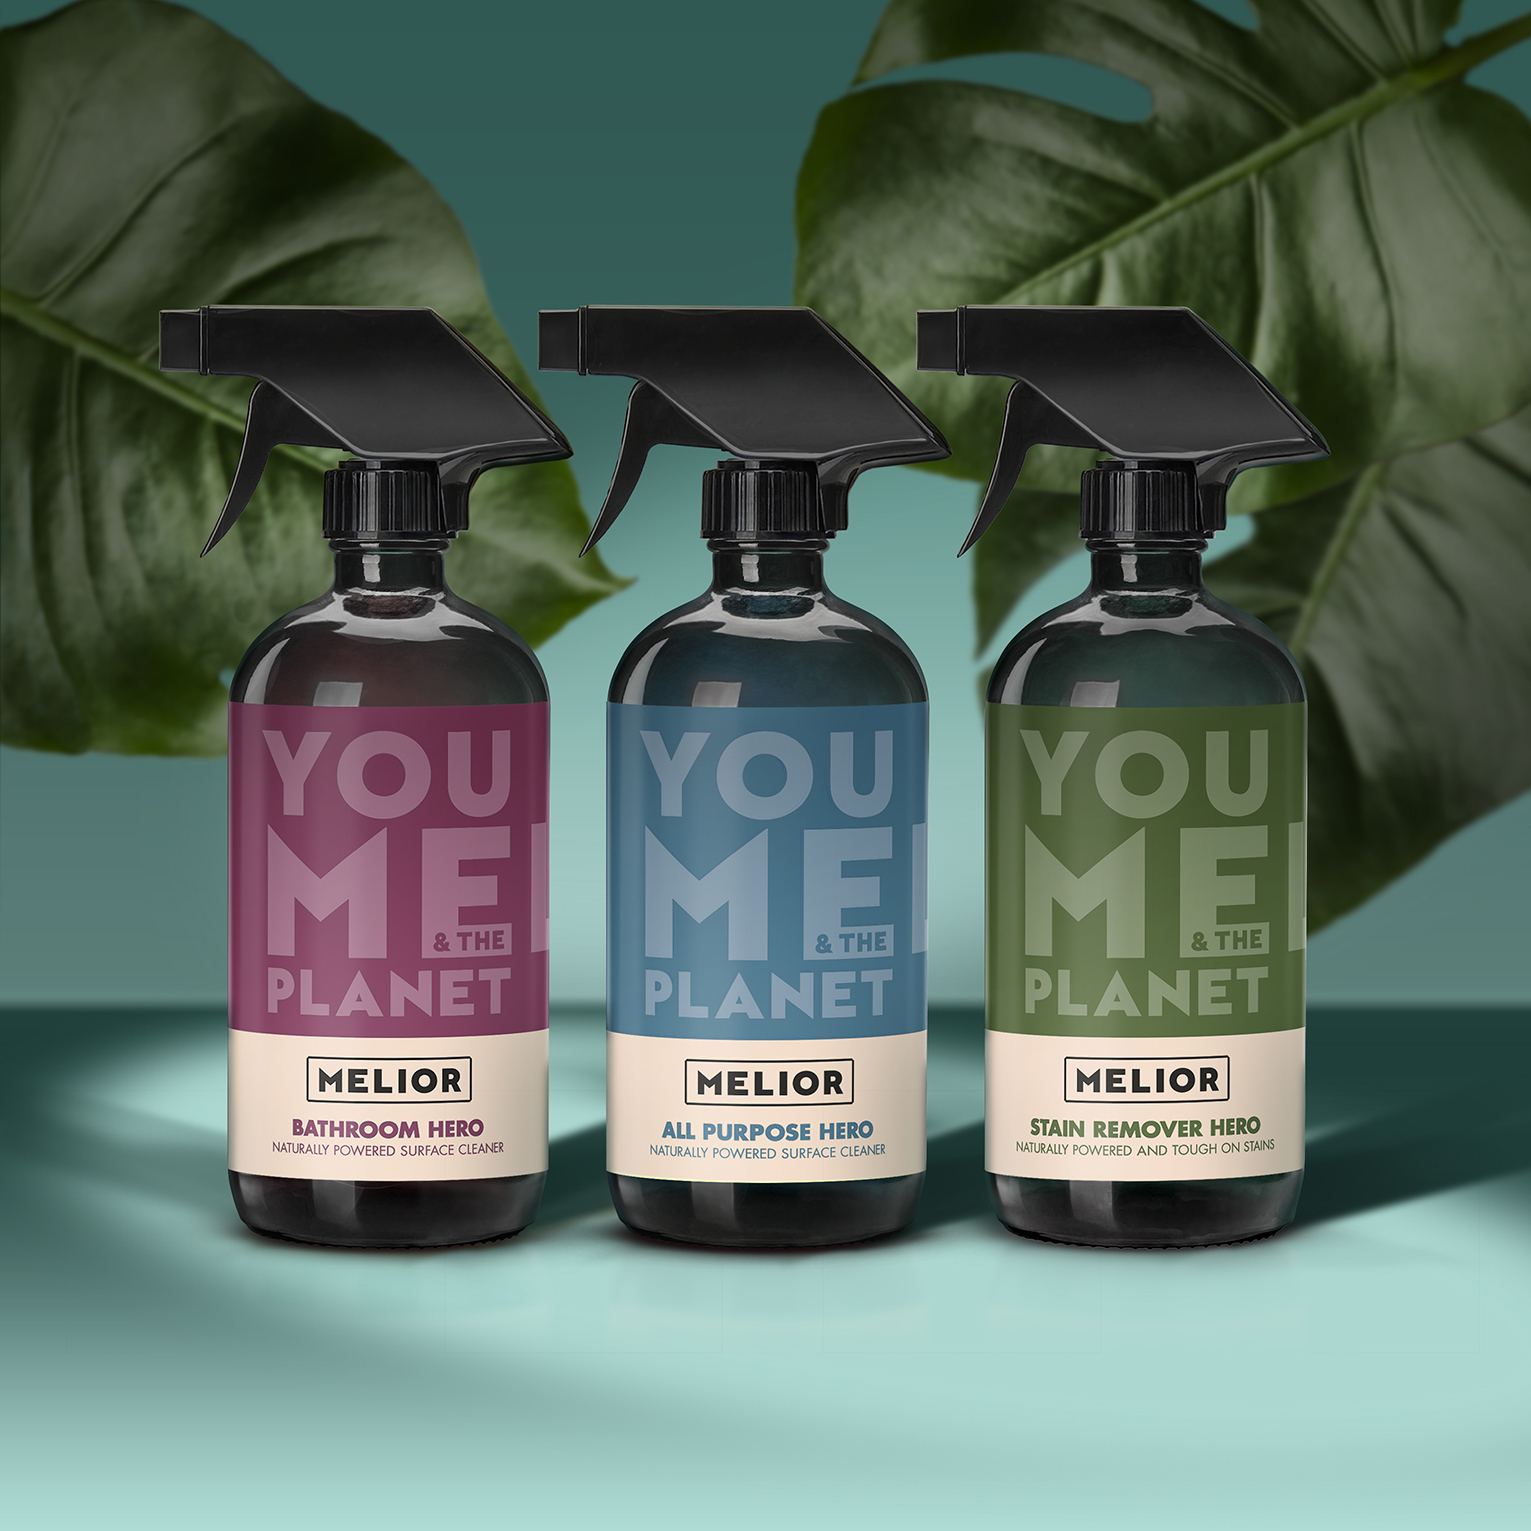 You, Me and the Planet: Melior Design From Biles Hendry